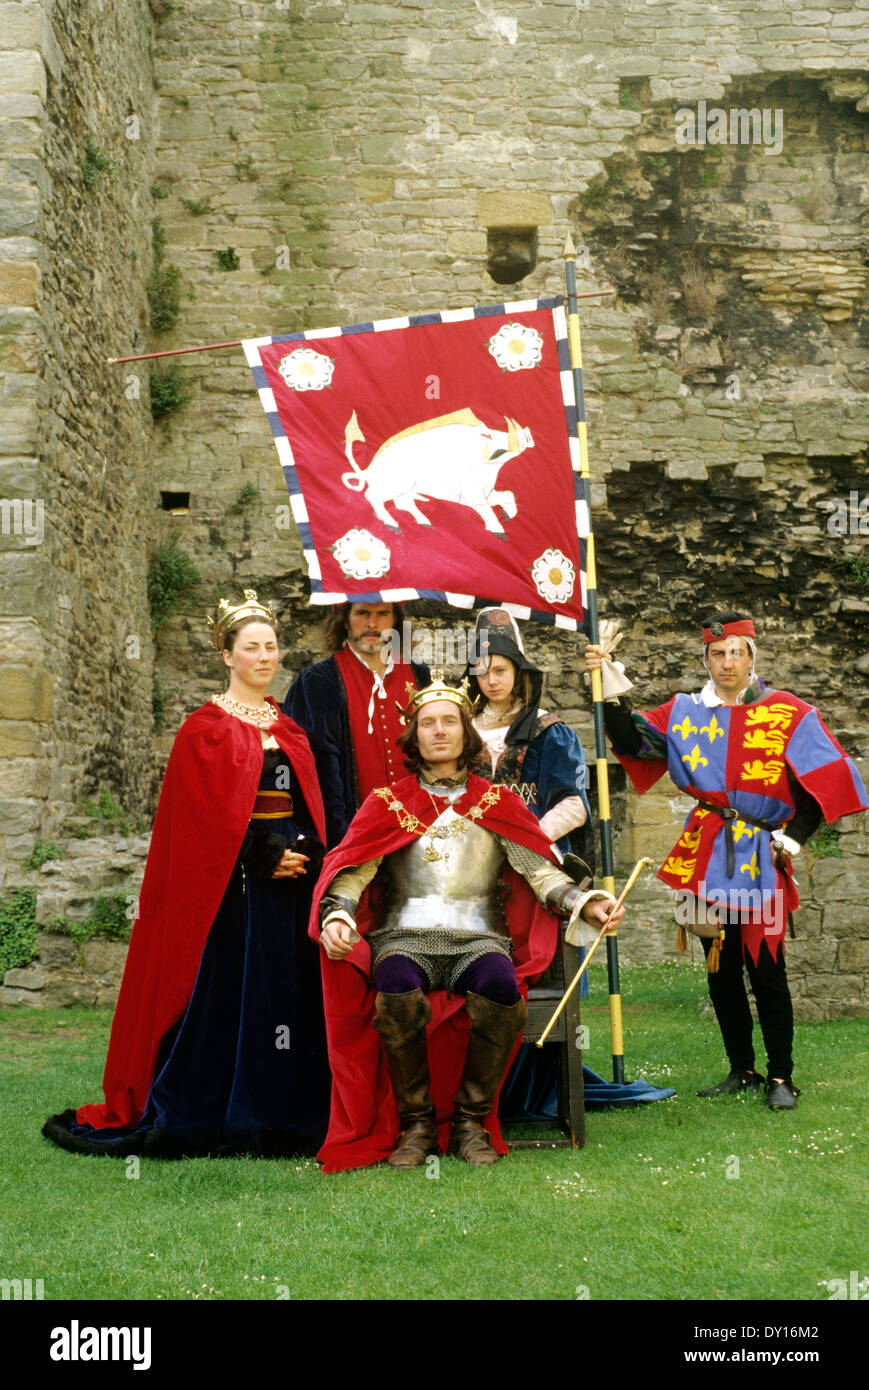 King Richard 3rd Third, medieval late 15th century historical re-enactment, Middleham Castle costume costumes armour armor Yorkshire England UK Boar Boar's Head coat of arms flag banner - Stock Image